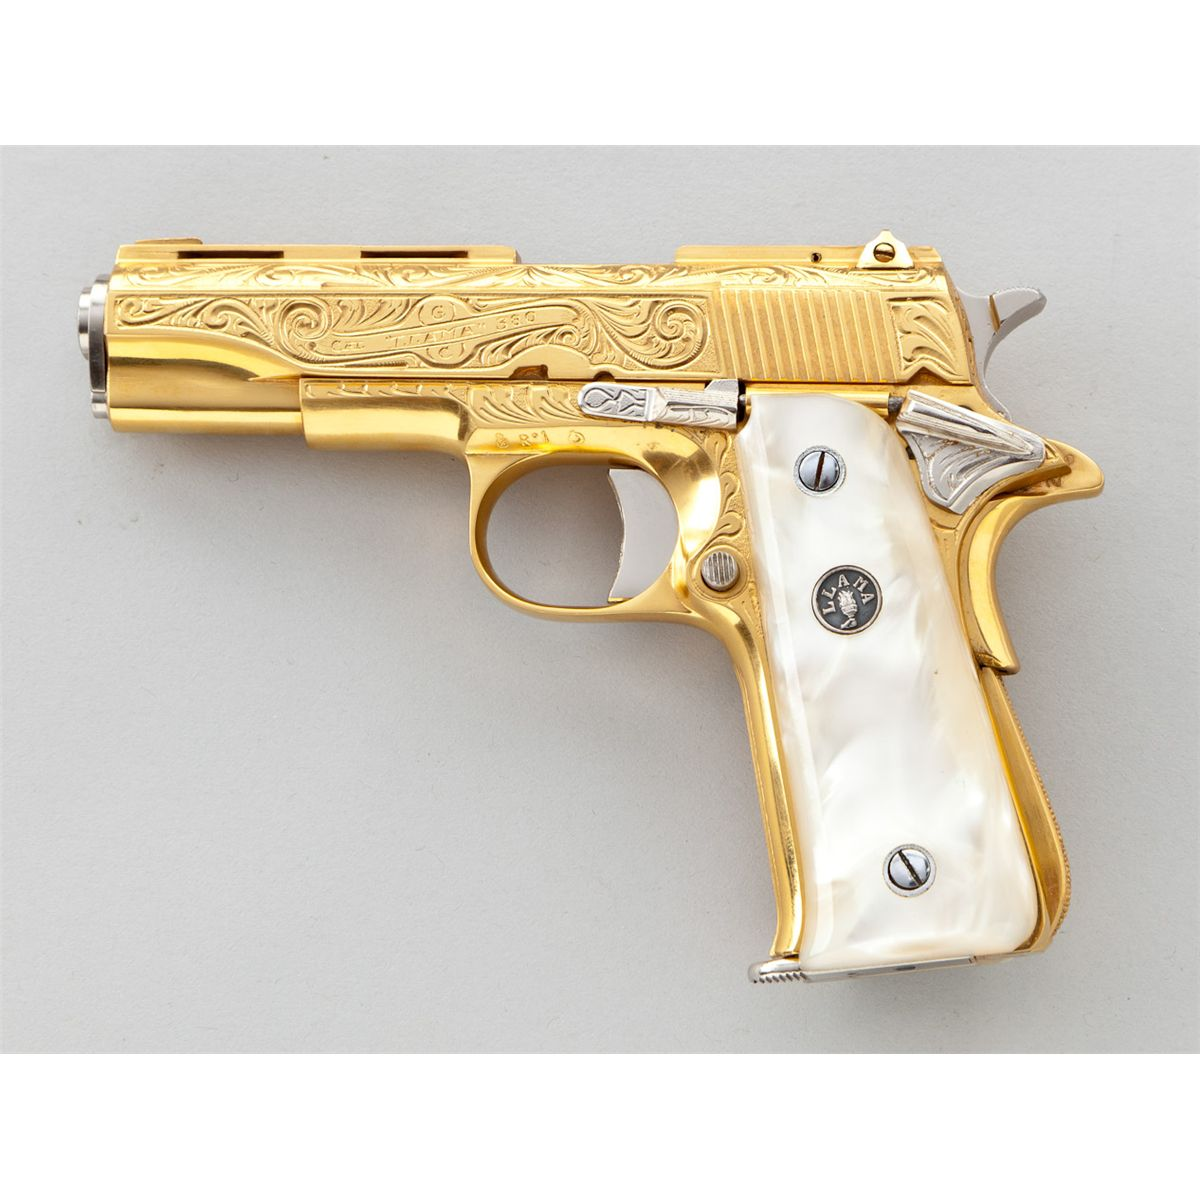 Gold Engraved Llama Small Frame Pistol